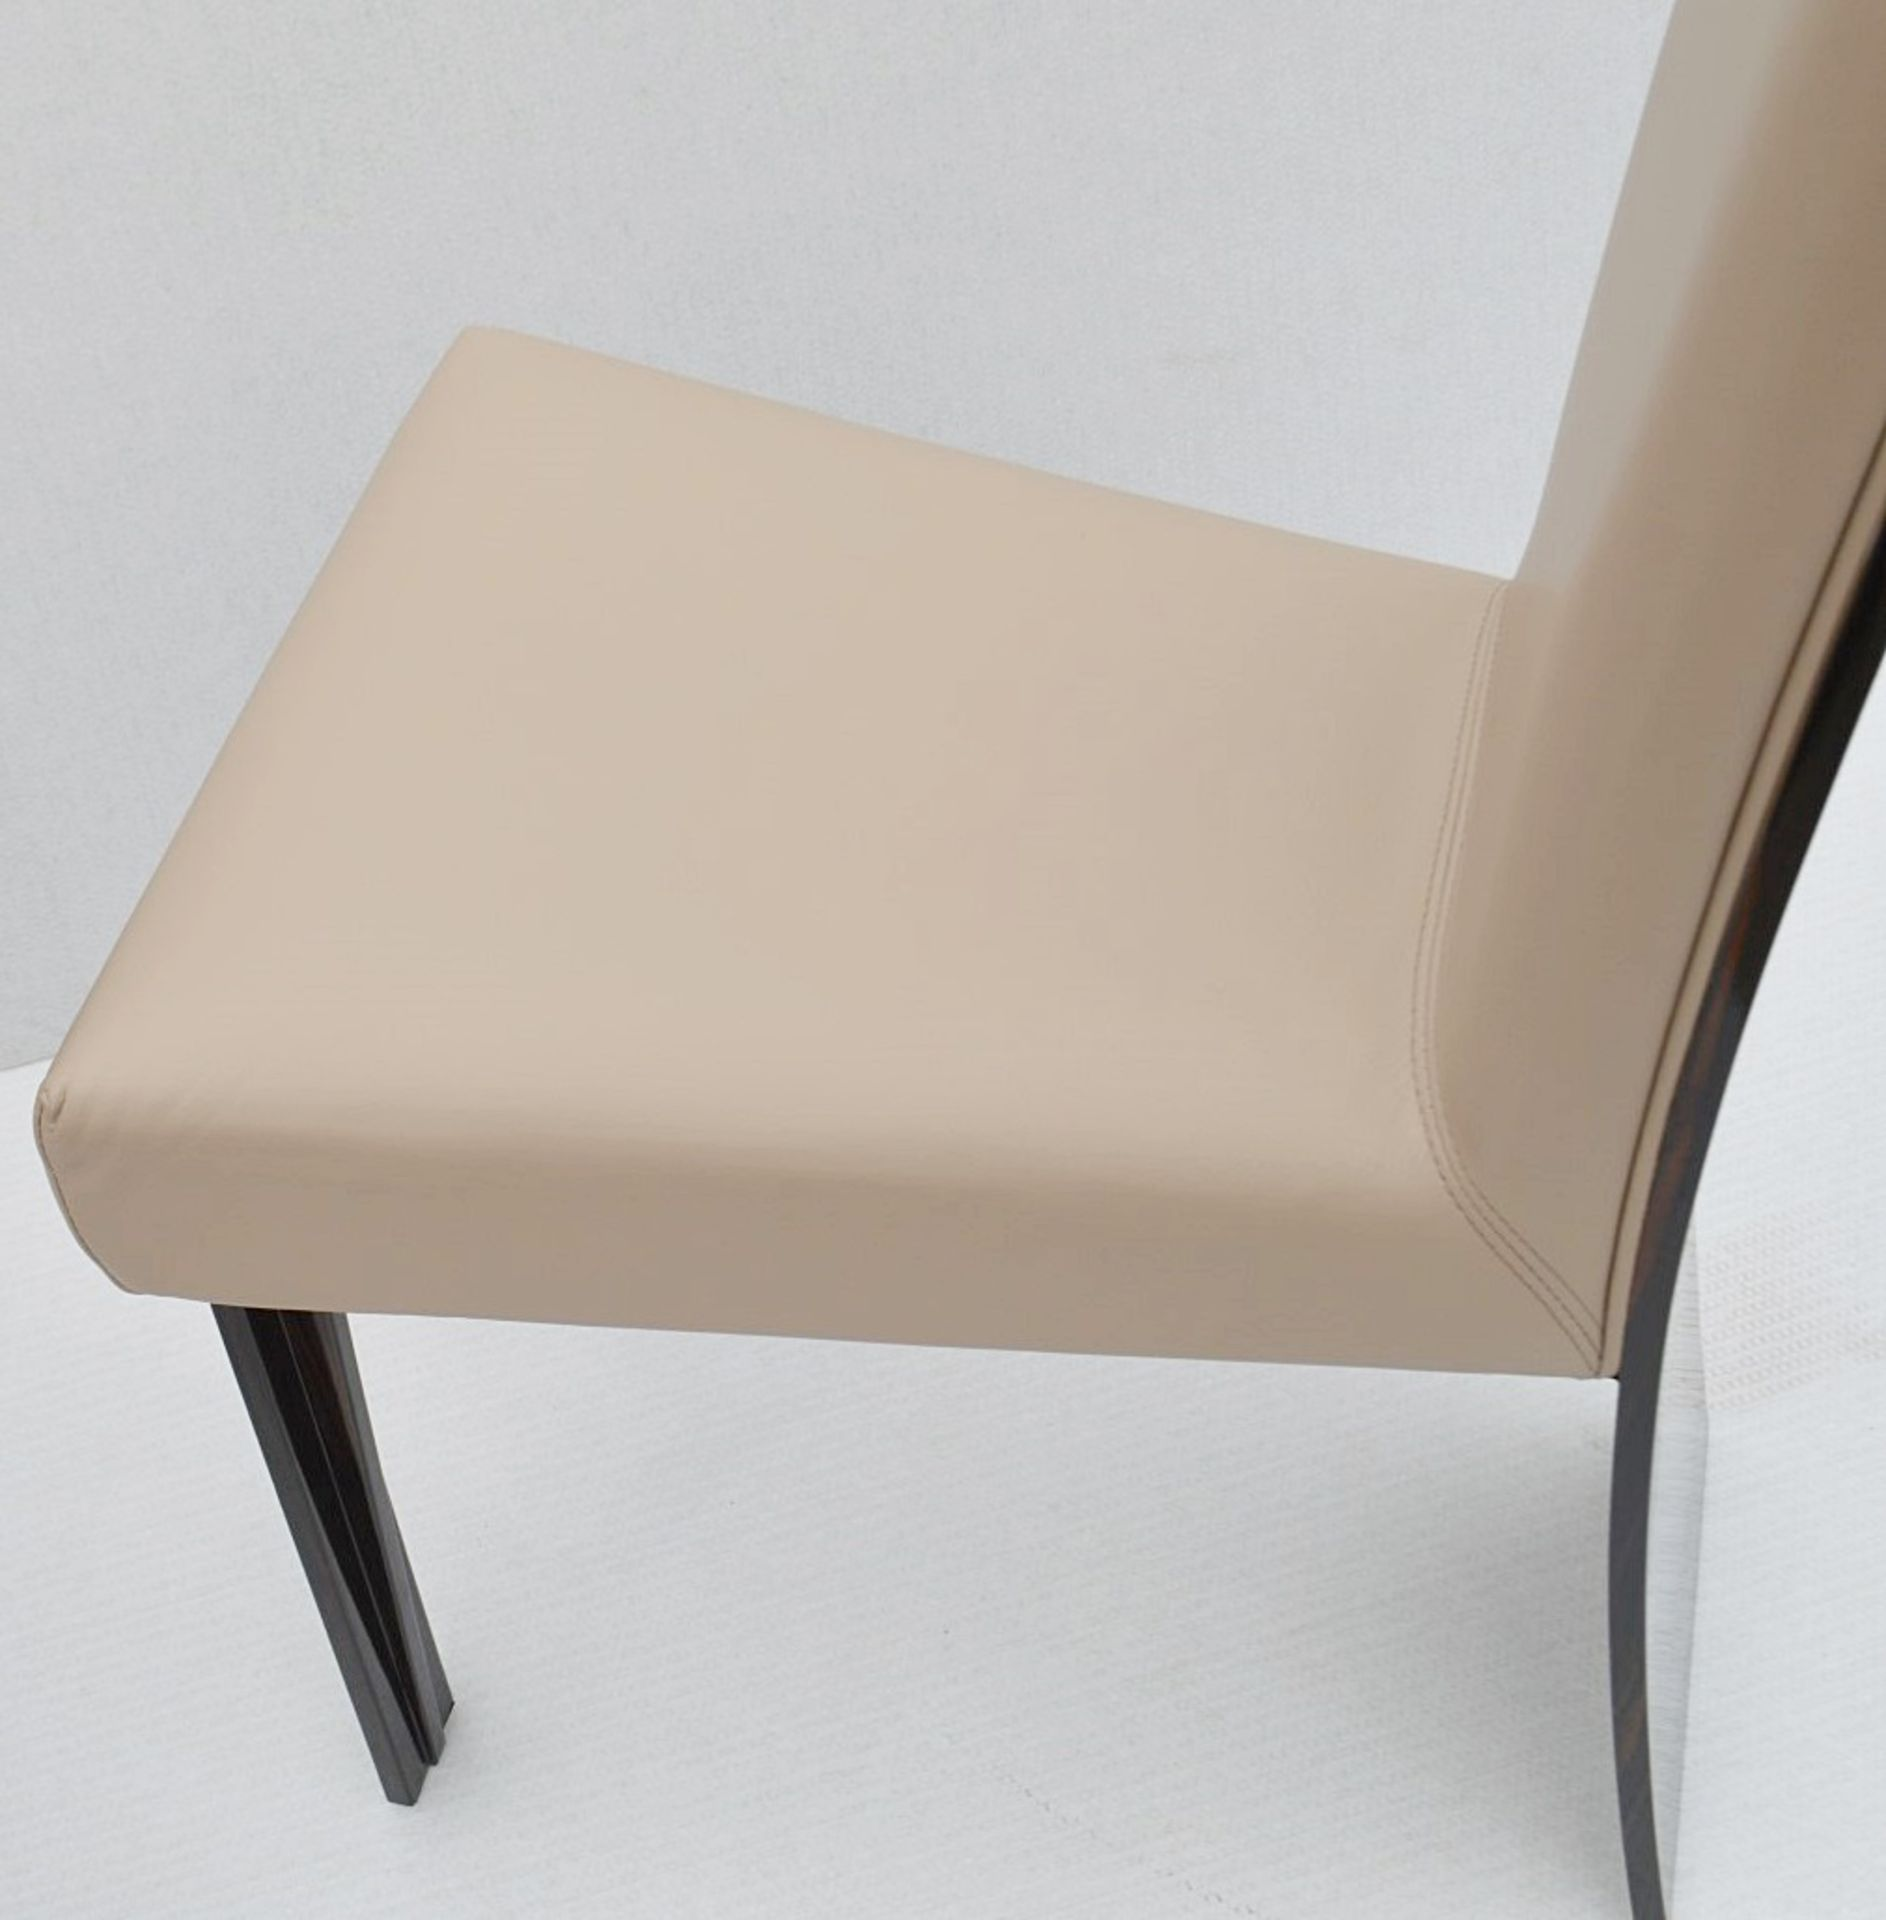 A Pair Of REFLEX 'New York-2' Designer Leather Upholstered High-back Chairs - Original RRP £2,578 - Image 3 of 8